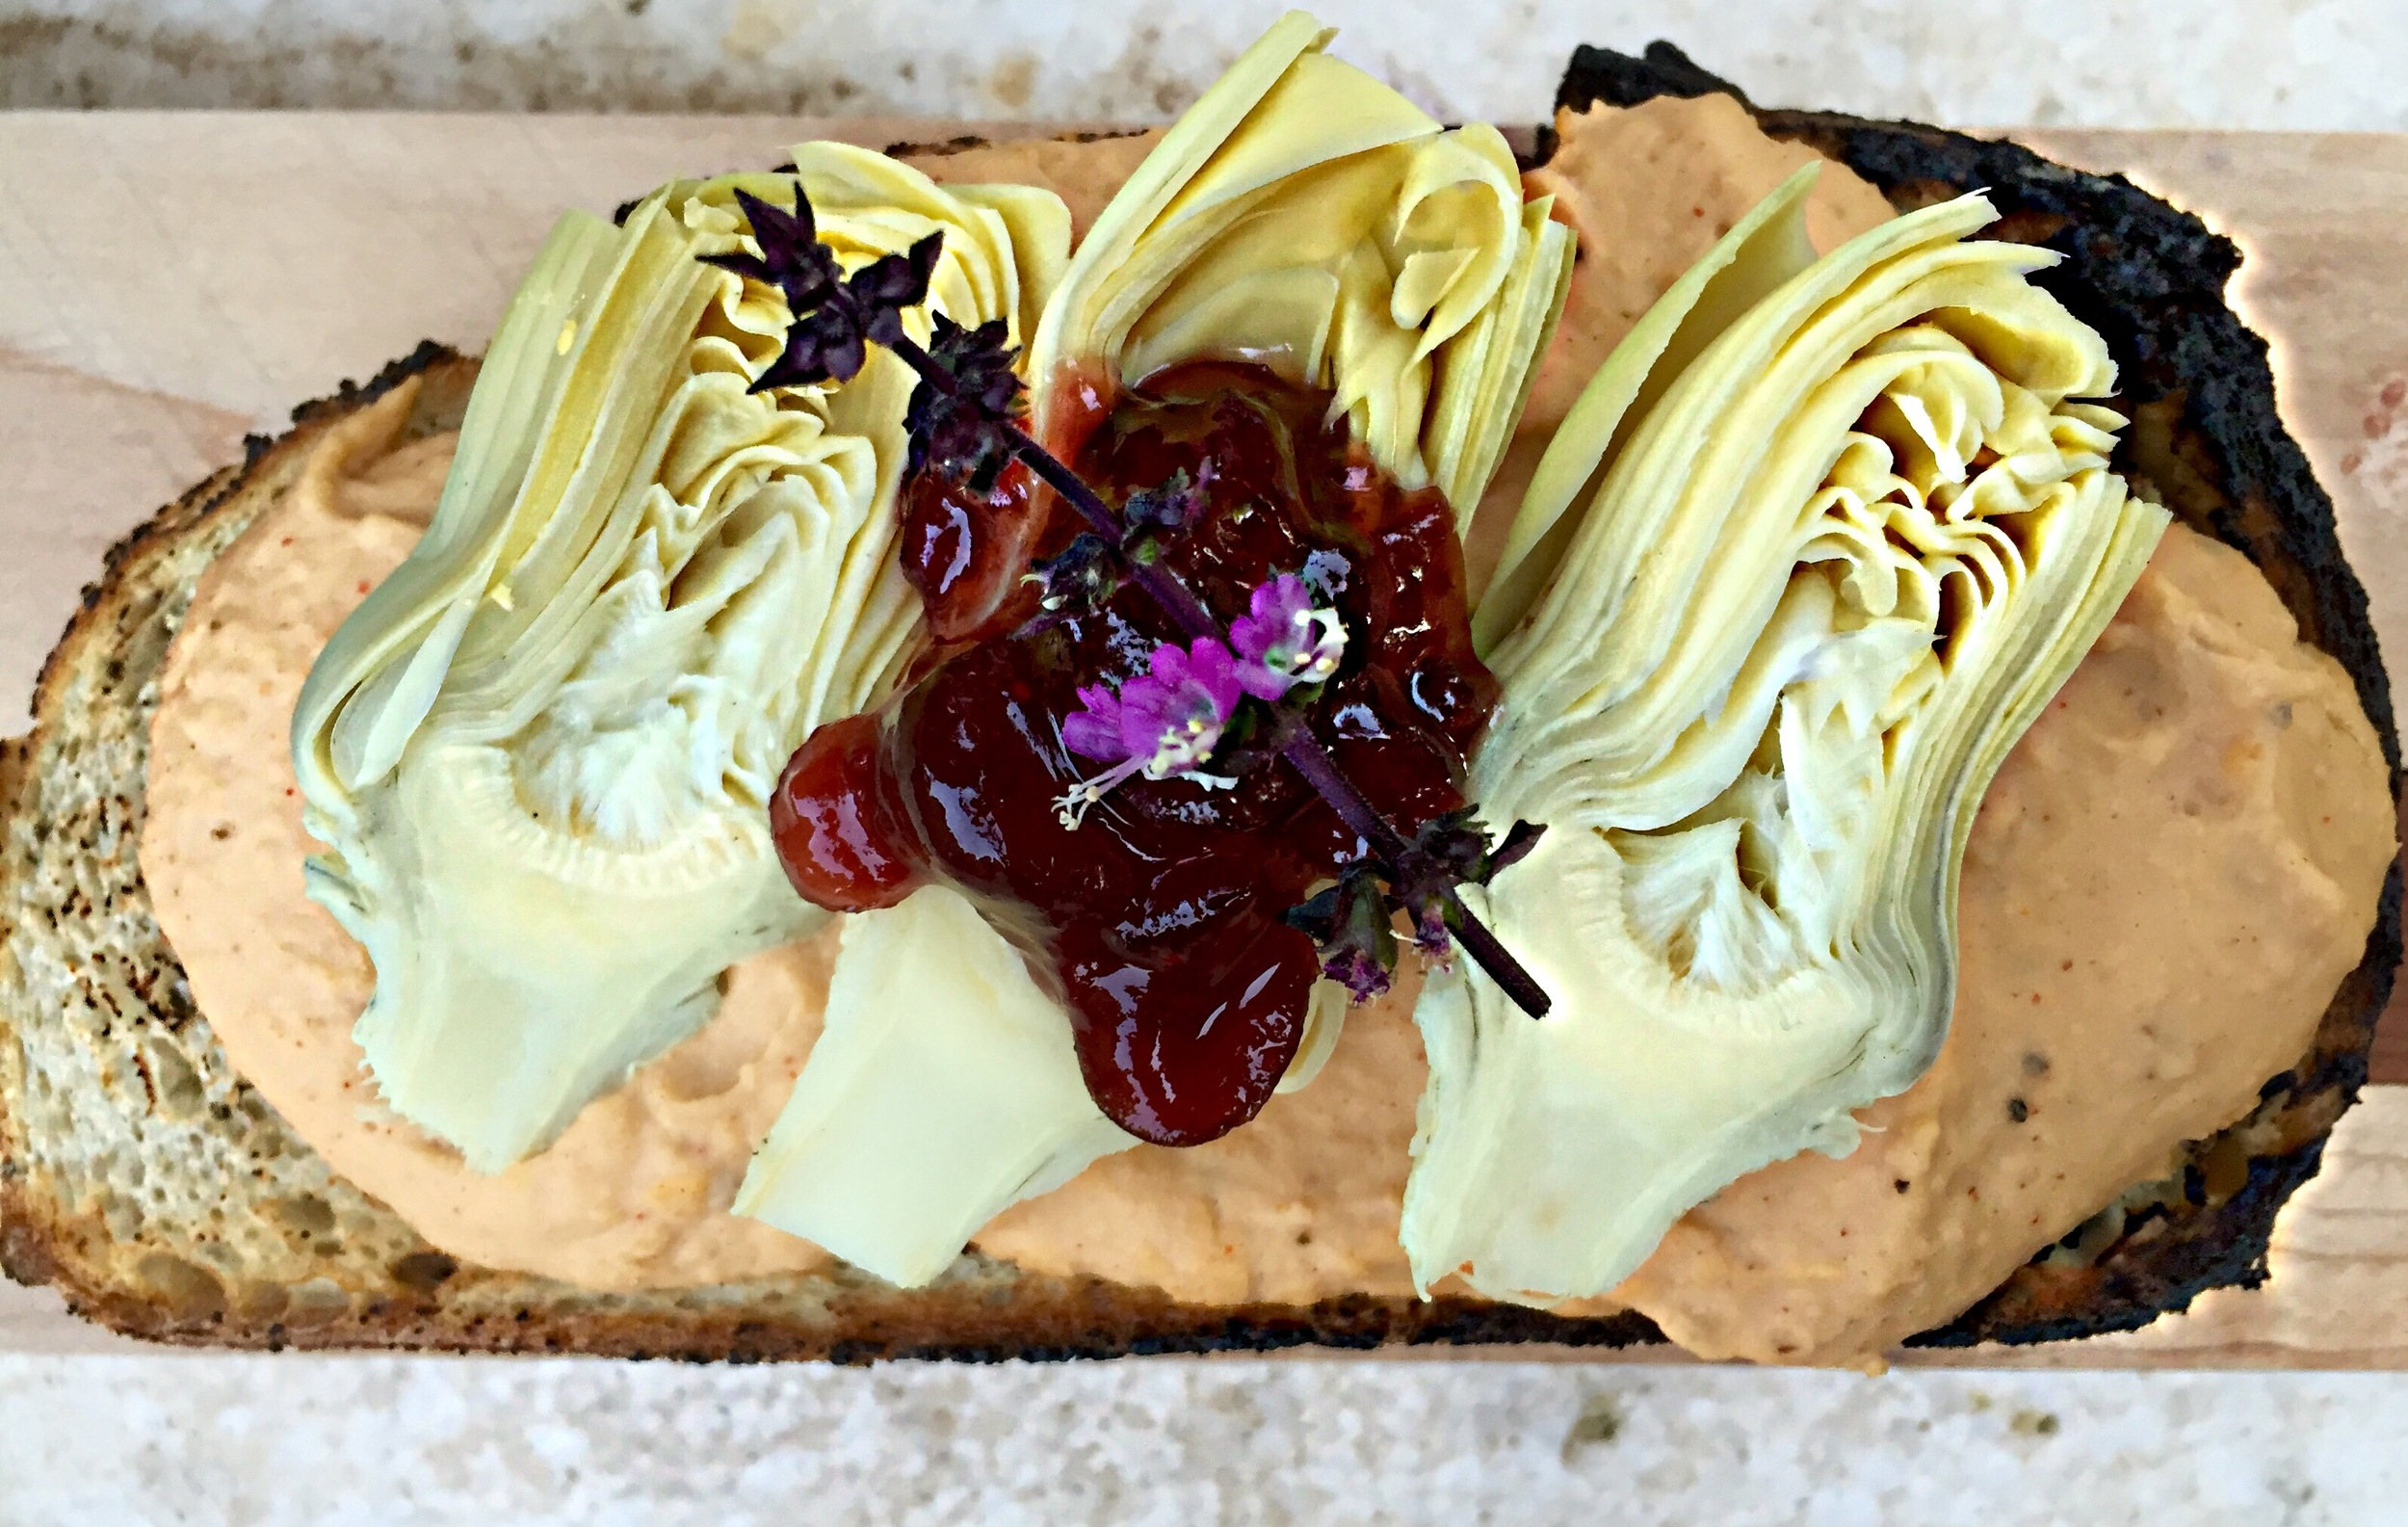 My Cannellini Bean Hummus on toast with artichoke hearts and  Cranberry-Fennel Compote